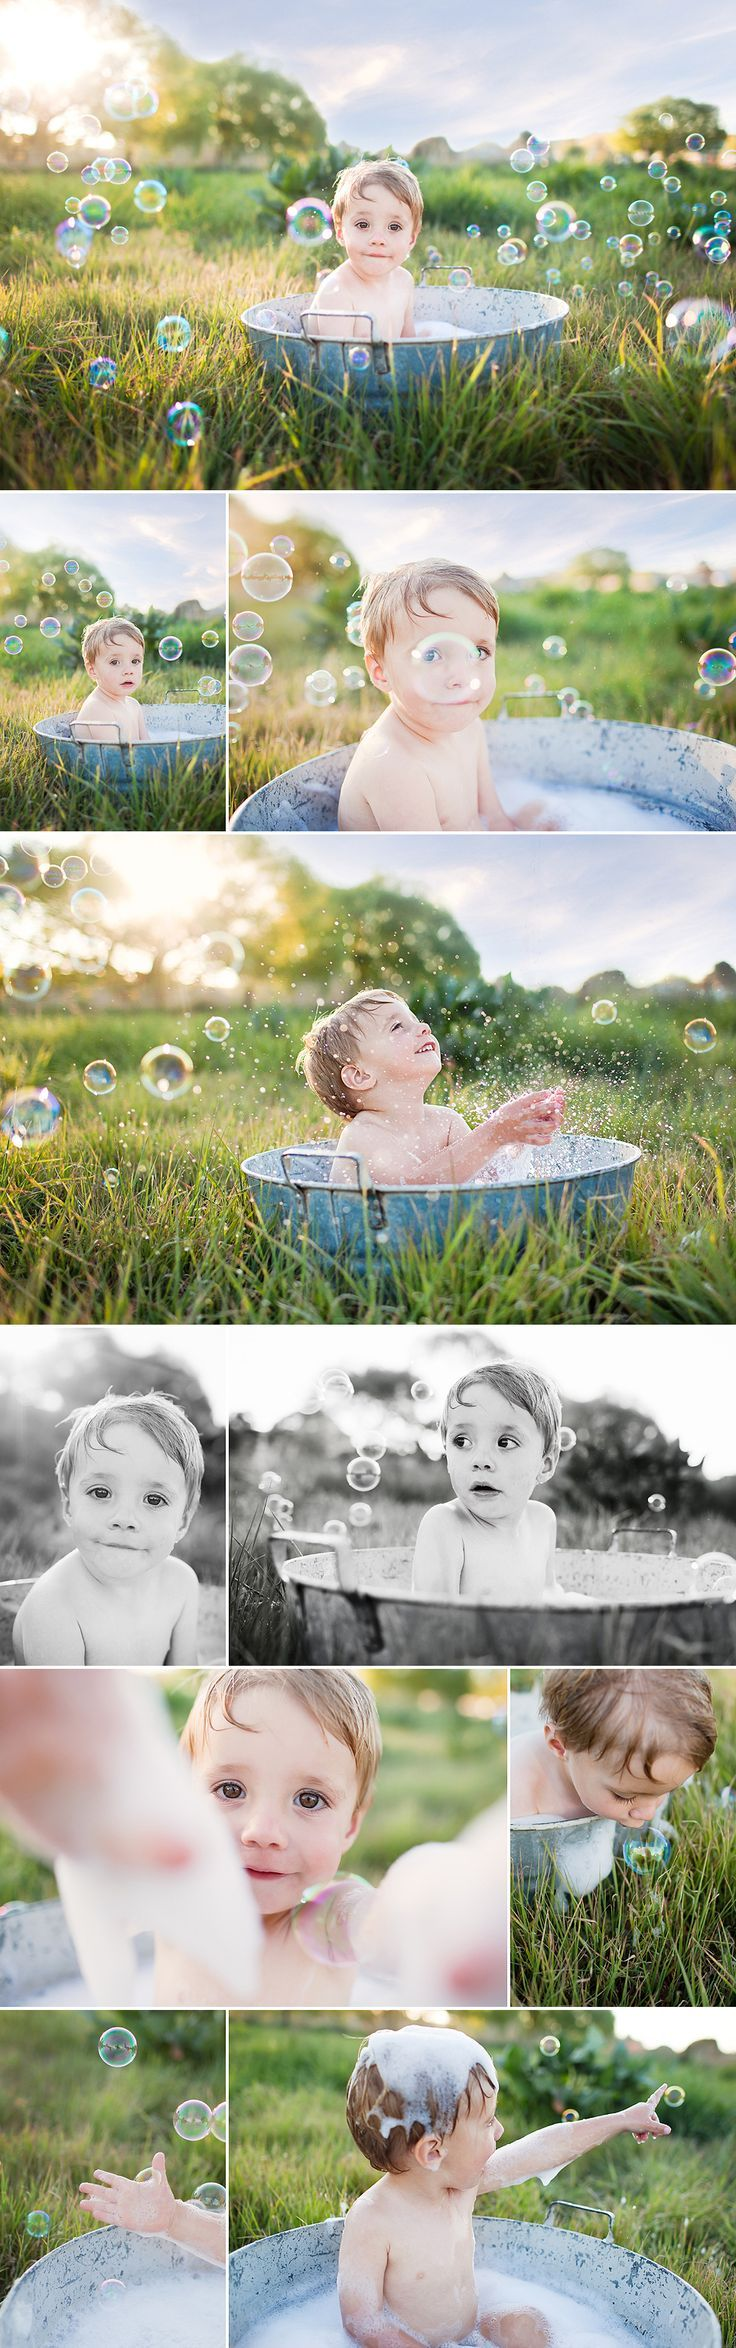 cute bubble bath photo shoot! Maybe for pics in the boys bathroom